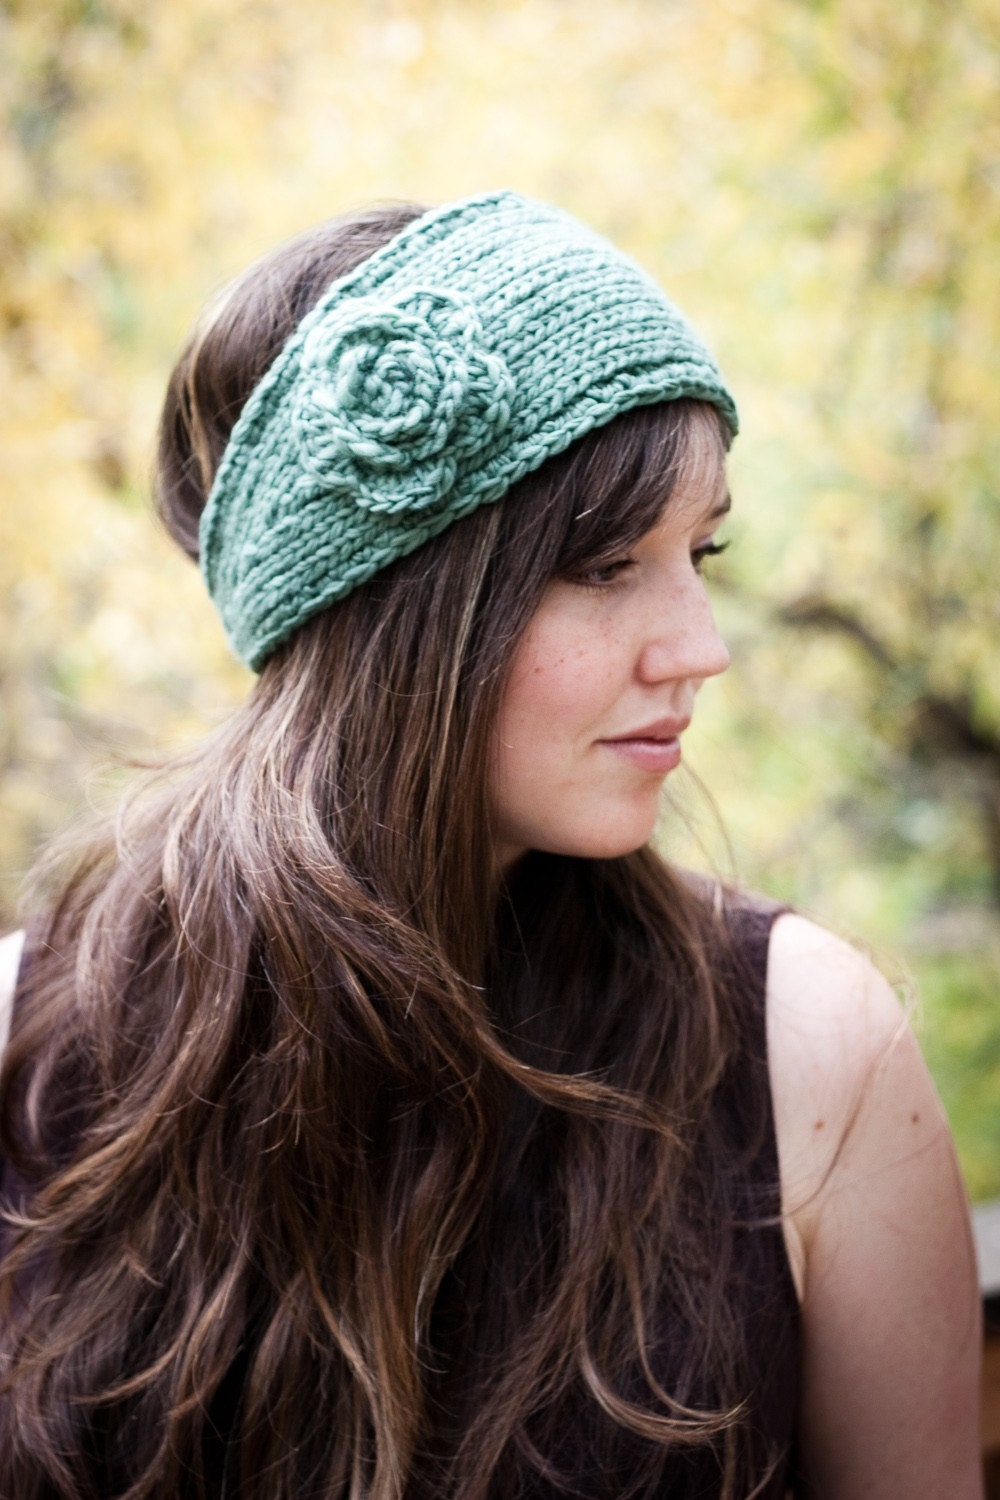 Knitted Headband Patterns With Flower : PATTERN Flower Headband Earwarmer Knit and Crochet Pattern